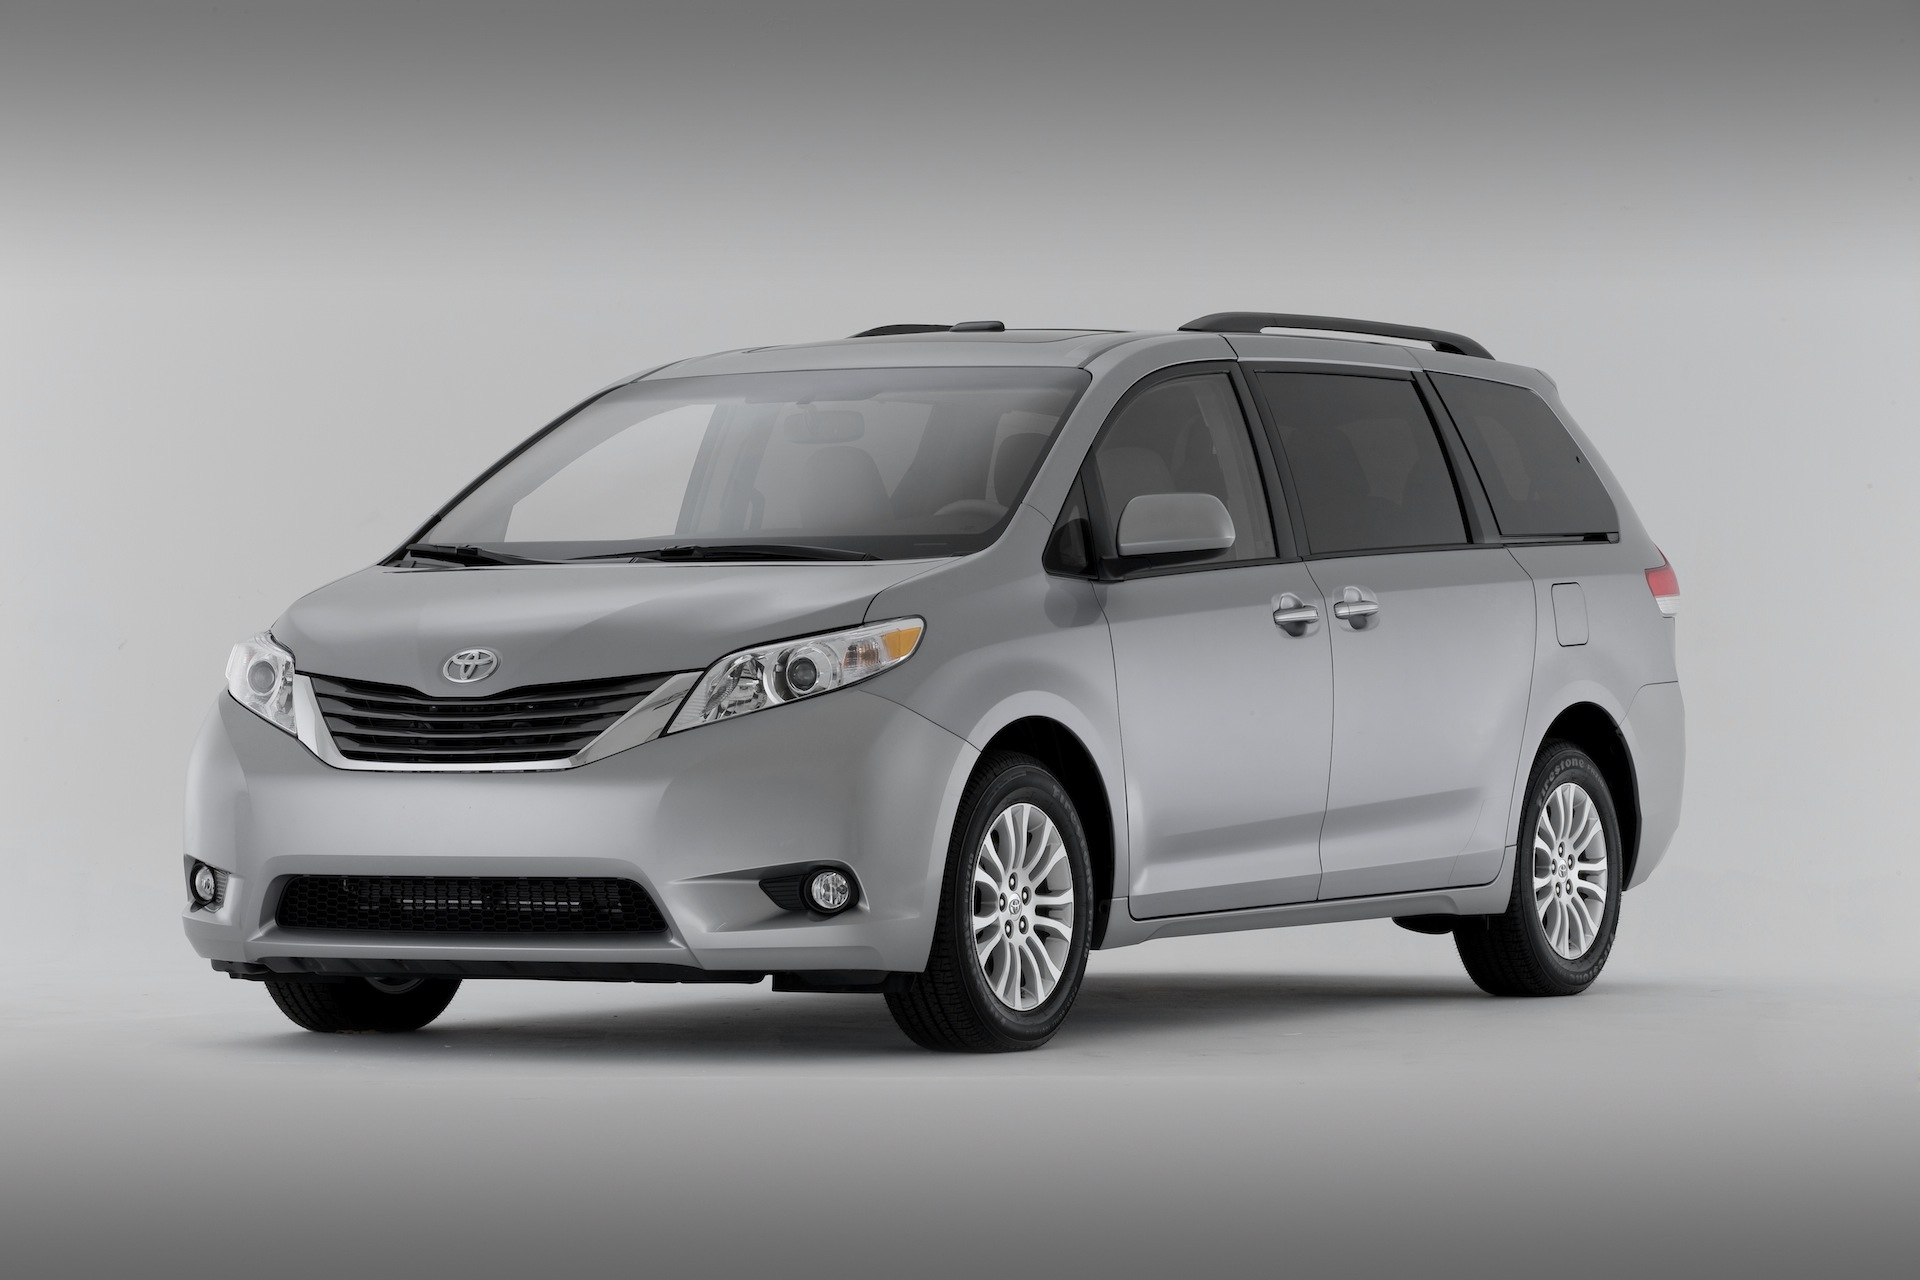 2014 toyota sienna review ratings specs prices and photos the car connection 2014 toyota sienna review ratings